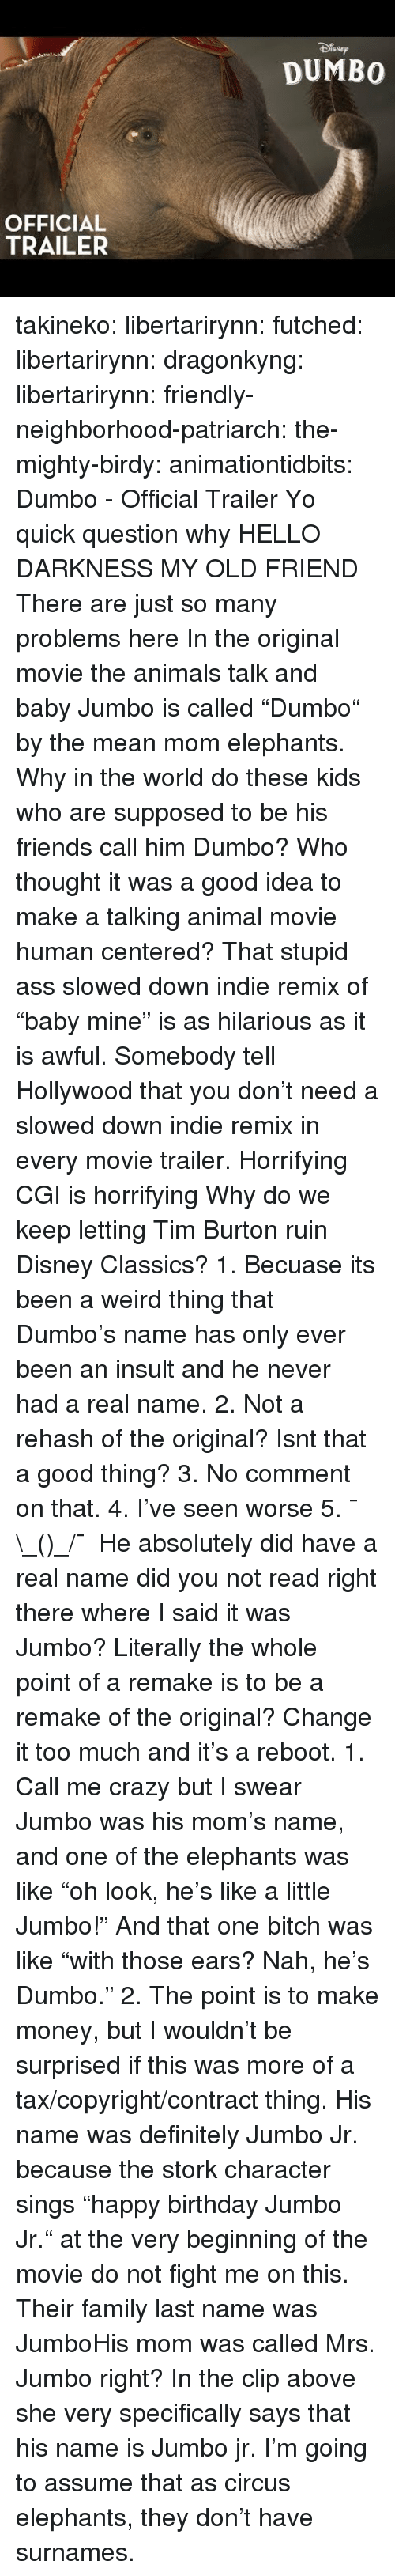 "Animals, Ass, and Birthday: SNEp  DUMBO  OFFICIAL  TRAILER takineko:  libertarirynn: futched:   libertarirynn:   dragonkyng:   libertarirynn:   friendly-neighborhood-patriarch:  the-mighty-birdy:   animationtidbits:  Dumbo - Official Trailer  Yo quick question why   HELLO DARKNESS MY OLD FRIEND   There are just so many problems here In the original movie the animals talk and baby Jumbo is called ""Dumbo"" by the mean mom elephants. Why in the world do these kids who are supposed to be his friends call him Dumbo? Who thought it was a good idea to make a talking animal movie human centered? That stupid ass slowed down indie remix of ""baby mine"" is as hilarious as it is awful. Somebody tell Hollywood that you don't need a slowed down indie remix in every movie trailer. Horrifying CGI is horrifying Why do we keep letting Tim Burton ruin Disney Classics?   1. Becuase its been a weird thing that Dumbo's name has only ever been an insult and he never had a real name. 2. Not a rehash of the original? Isnt that a good thing? 3. No comment on that. 4. I've seen worse 5. ¯\_(ツ)_/¯   He absolutely did have a real name did you not read right there where I said it was Jumbo? Literally the whole point of a remake is to be a remake of the original? Change it too much and it's a reboot.   1. Call me crazy but I swear Jumbo was his mom's name, and one of the elephants was like ""oh look, he's like a little Jumbo!"" And that one bitch was like ""with those ears? Nah, he's Dumbo."" 2. The point is to make money, but I wouldn't be surprised if this was more of a tax/copyright/contract thing.   His name was definitely Jumbo Jr. because the stork character sings ""happy birthday Jumbo Jr."" at the very beginning of the movie do not fight me on this.  Their family last name was JumboHis mom was called Mrs. Jumbo right?  In the clip above she very specifically says that his name is Jumbo jr. I'm going to assume that as circus elephants, they don't have surnames."